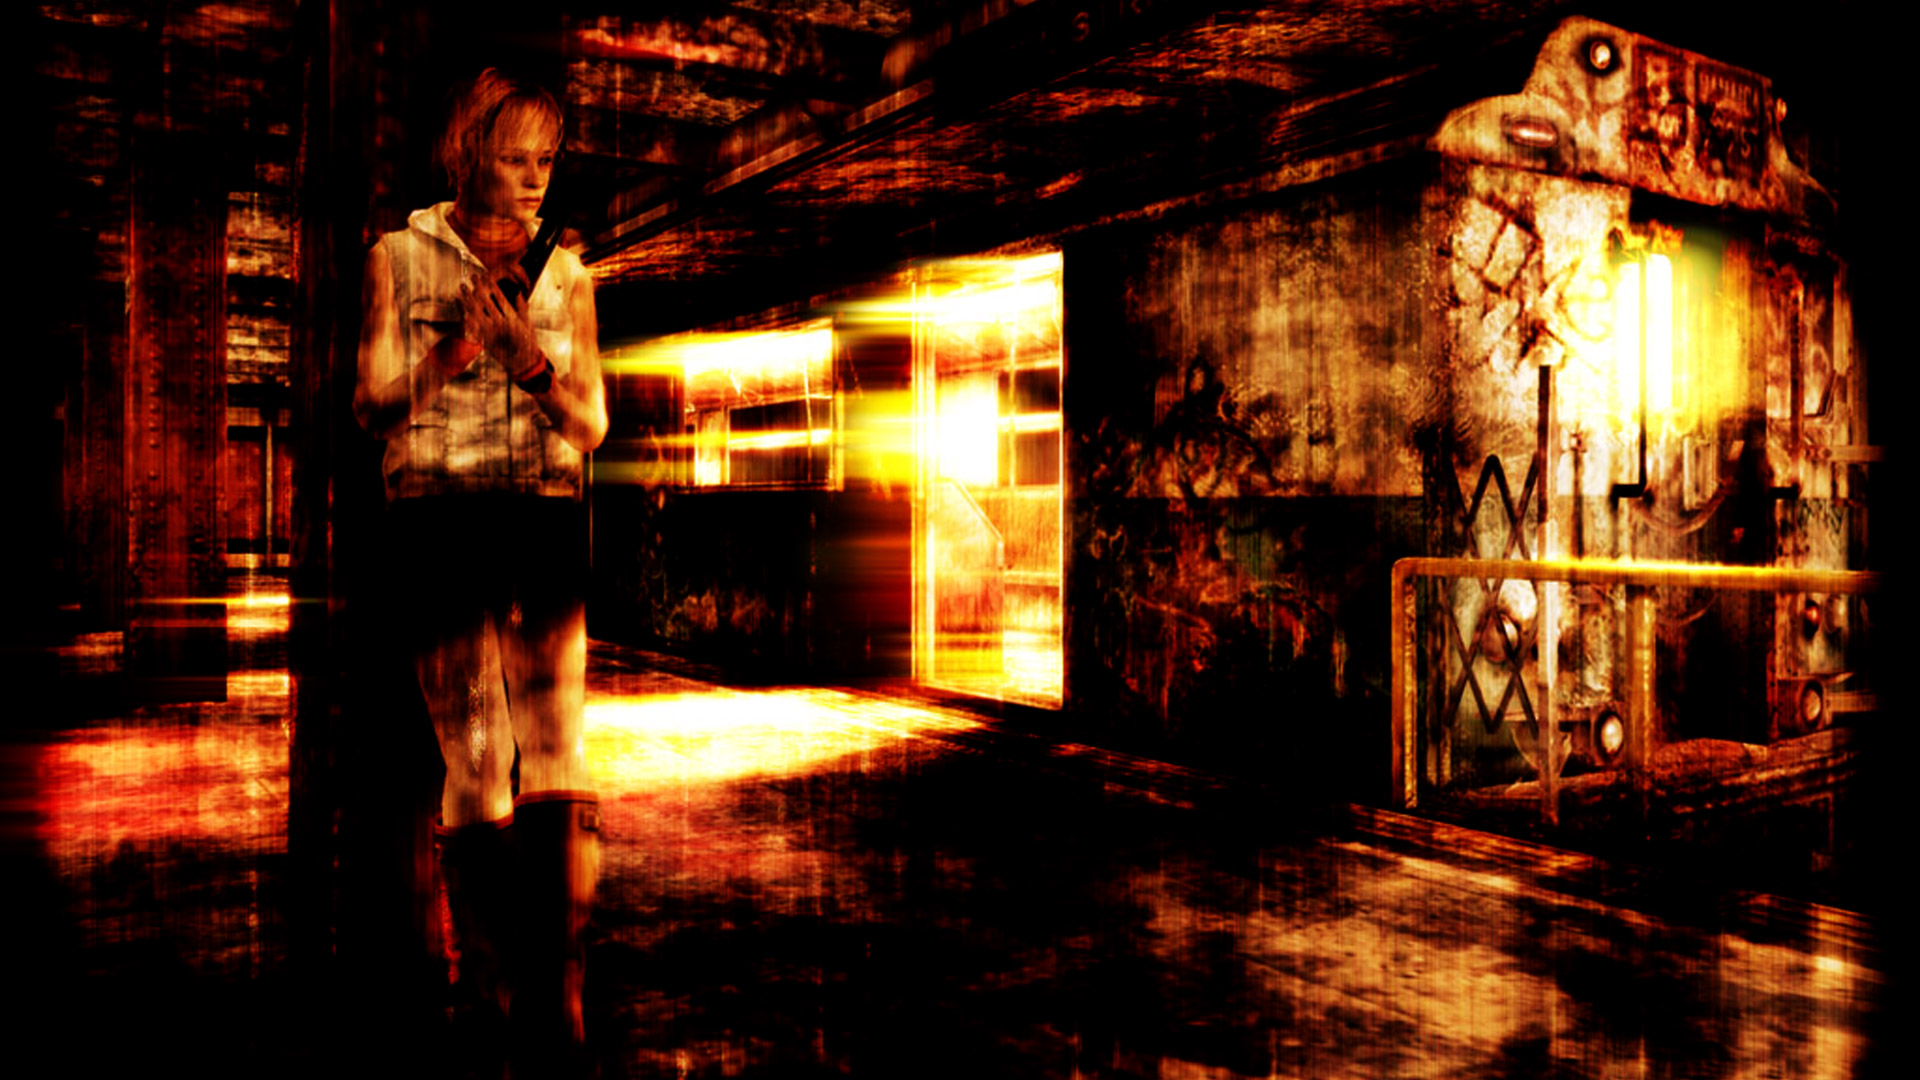 Silent Hill 3 Wallpaper in 1920x1080 1920x1080